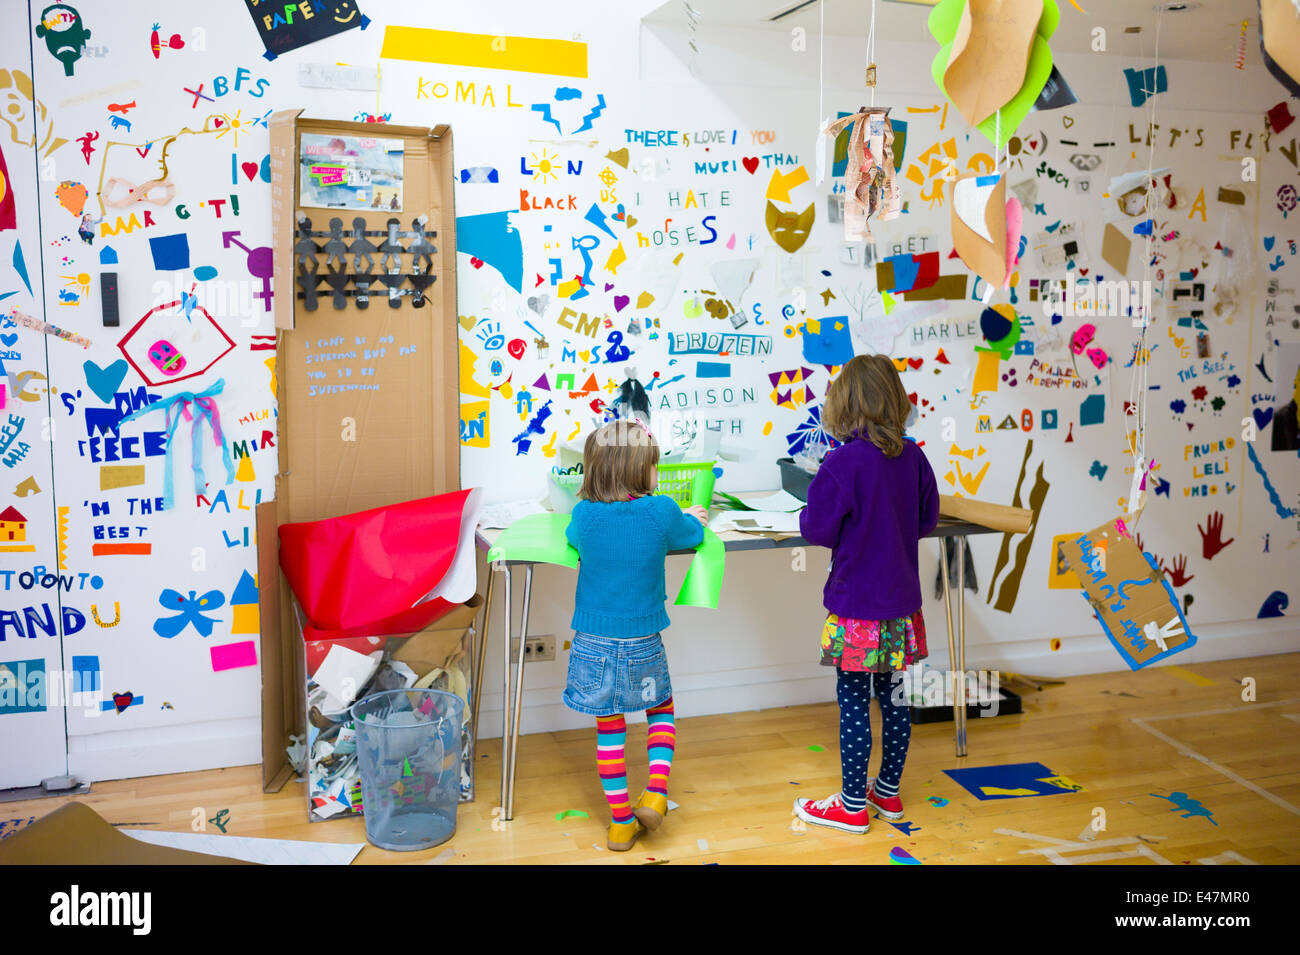 Children making artwork for Atelier Public 2 exhibition of artworks created by the public in Gallery of Modern Art - Stock Image